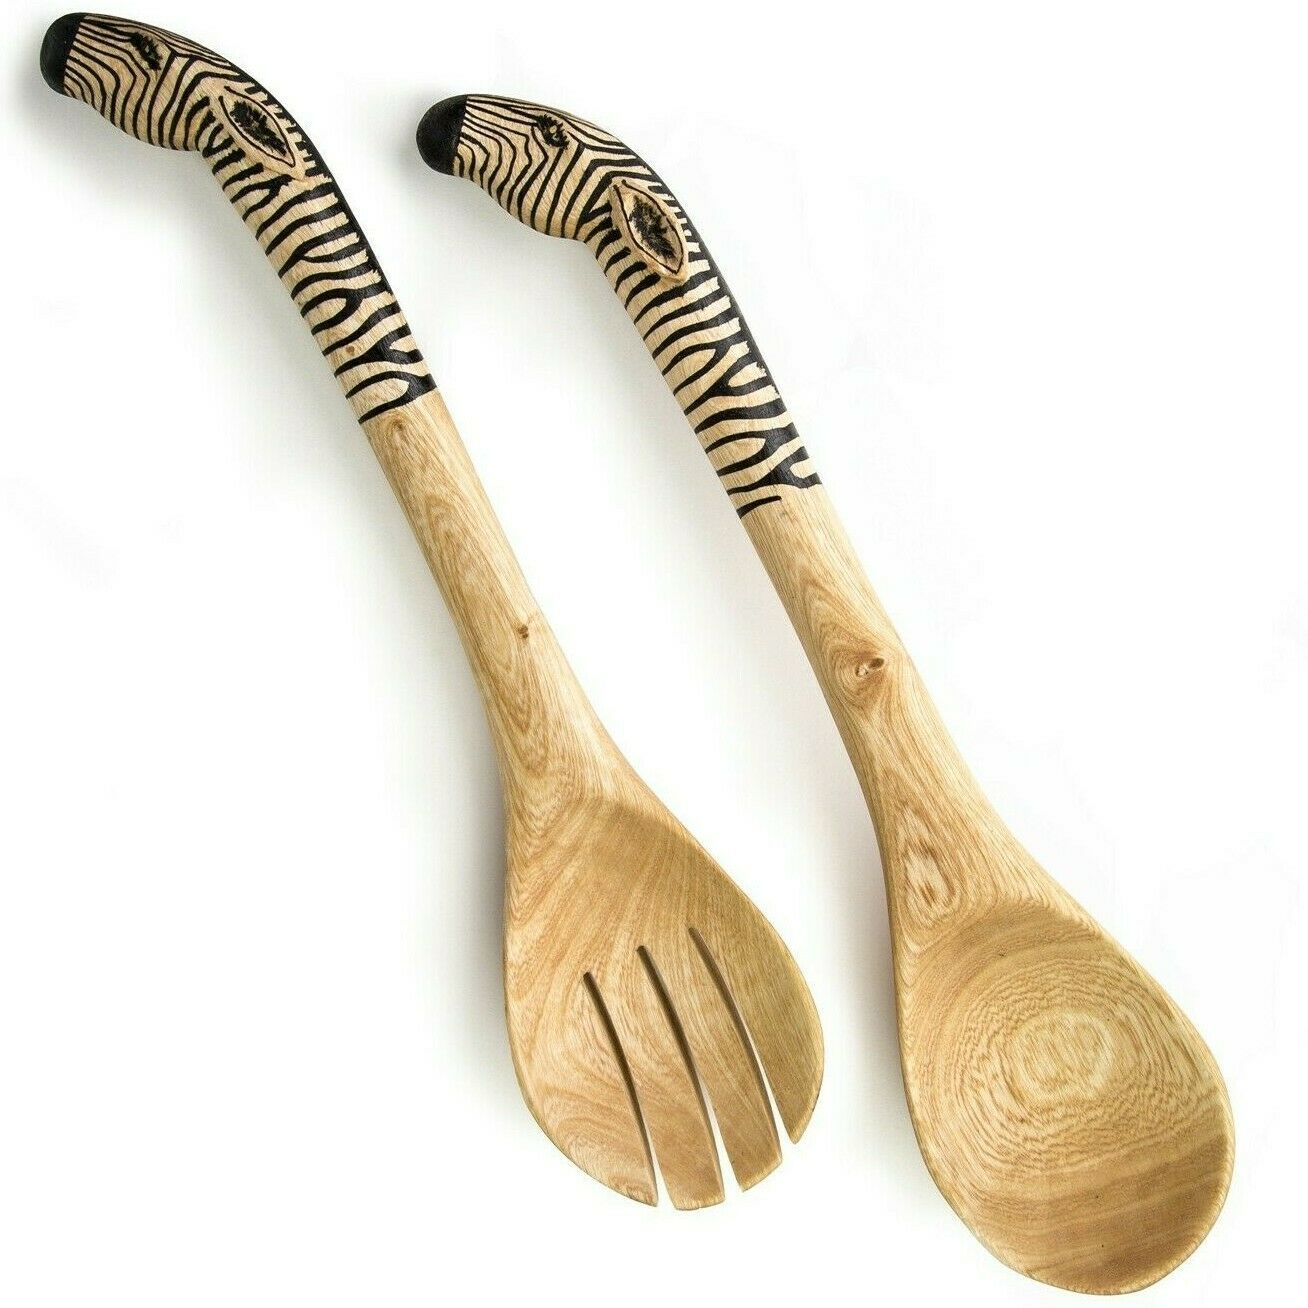 Acacia Creations Hand Carved Wood Safari African Zebra Salad Servers Set